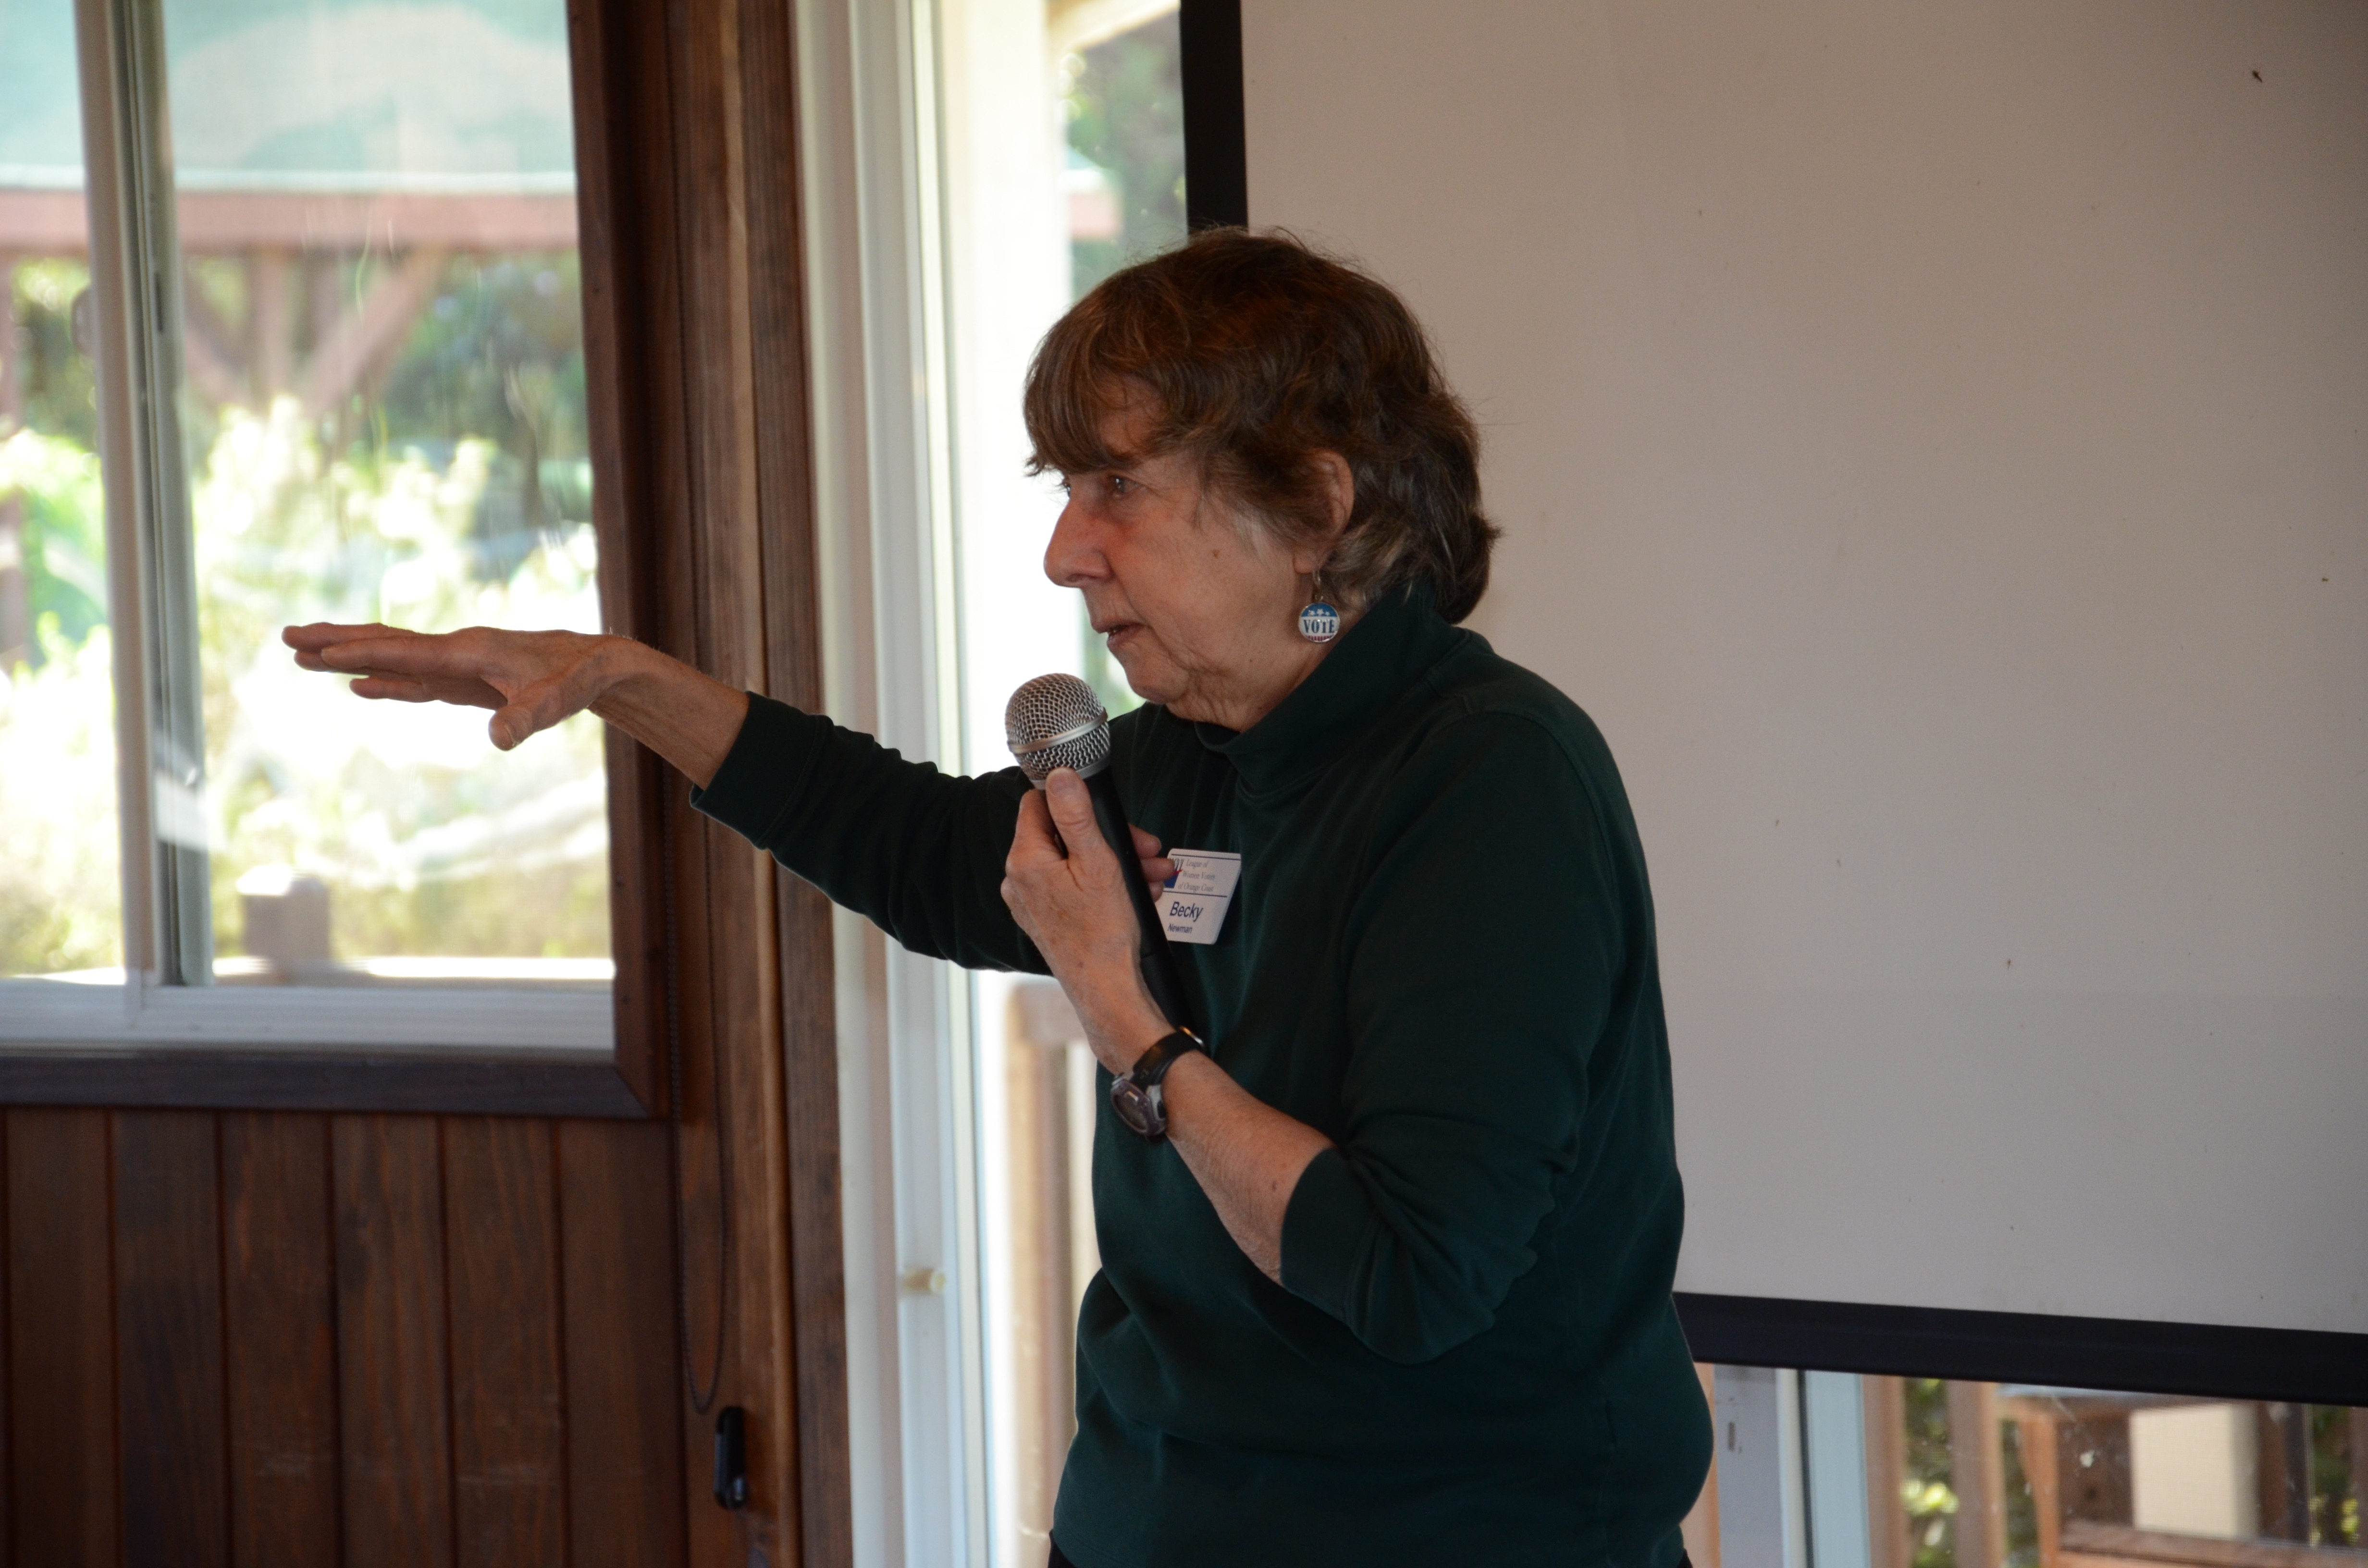 An image of a woman in a green sweater holding a microphone in one hand and gesturing with the other, which is lifted towards the audience with the palm down and the wrist bent.